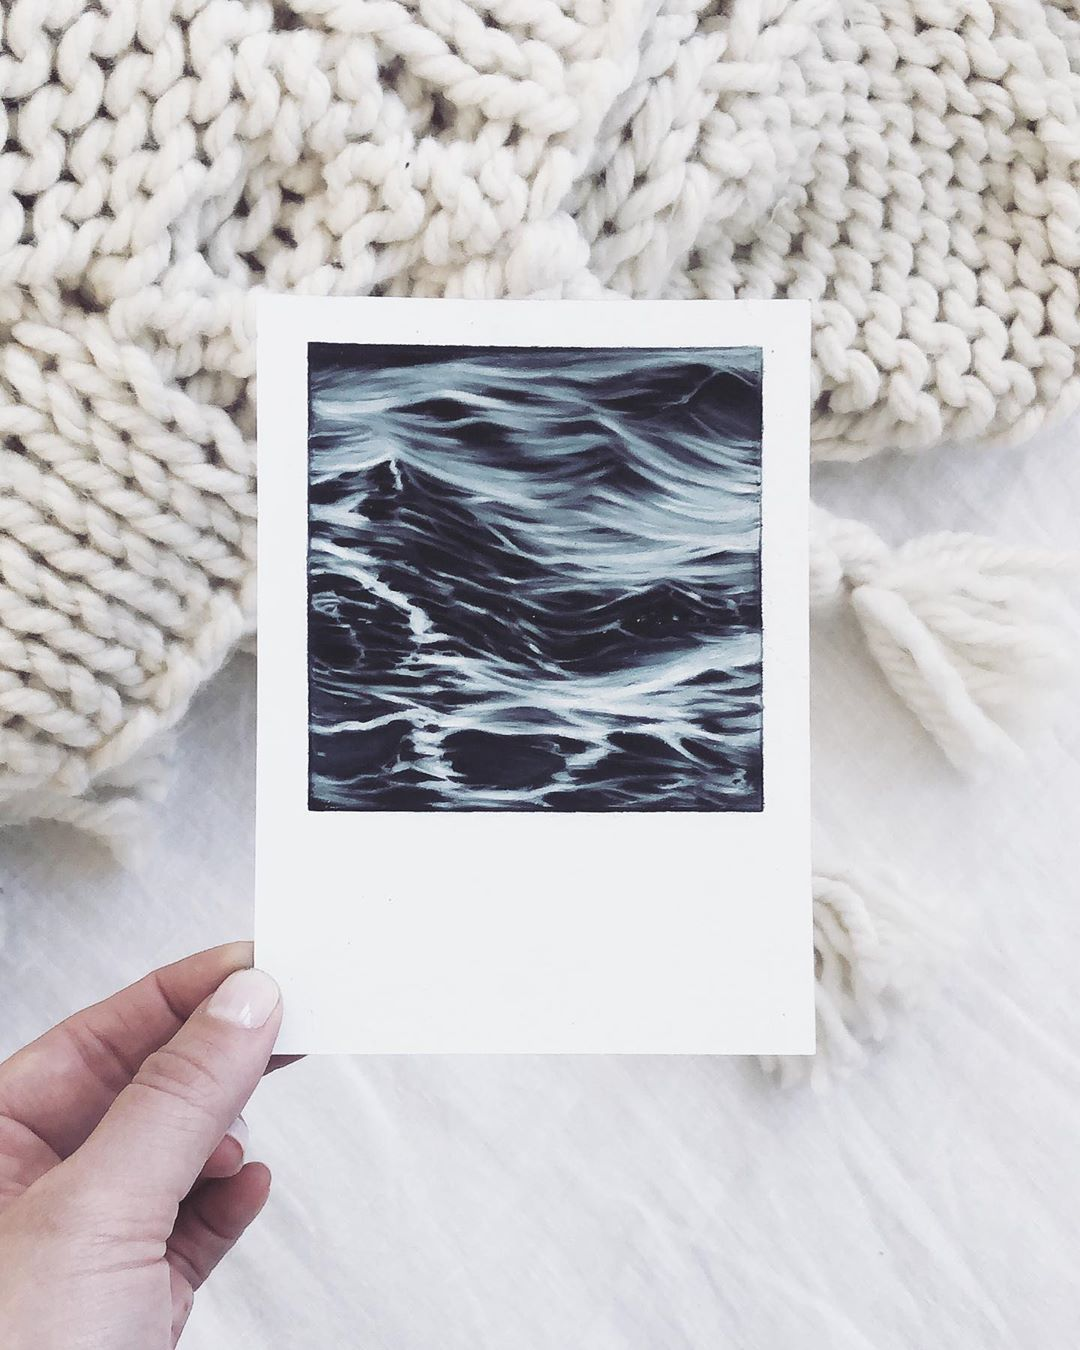 Ocean Pencil Drawings by Bethany Moffat